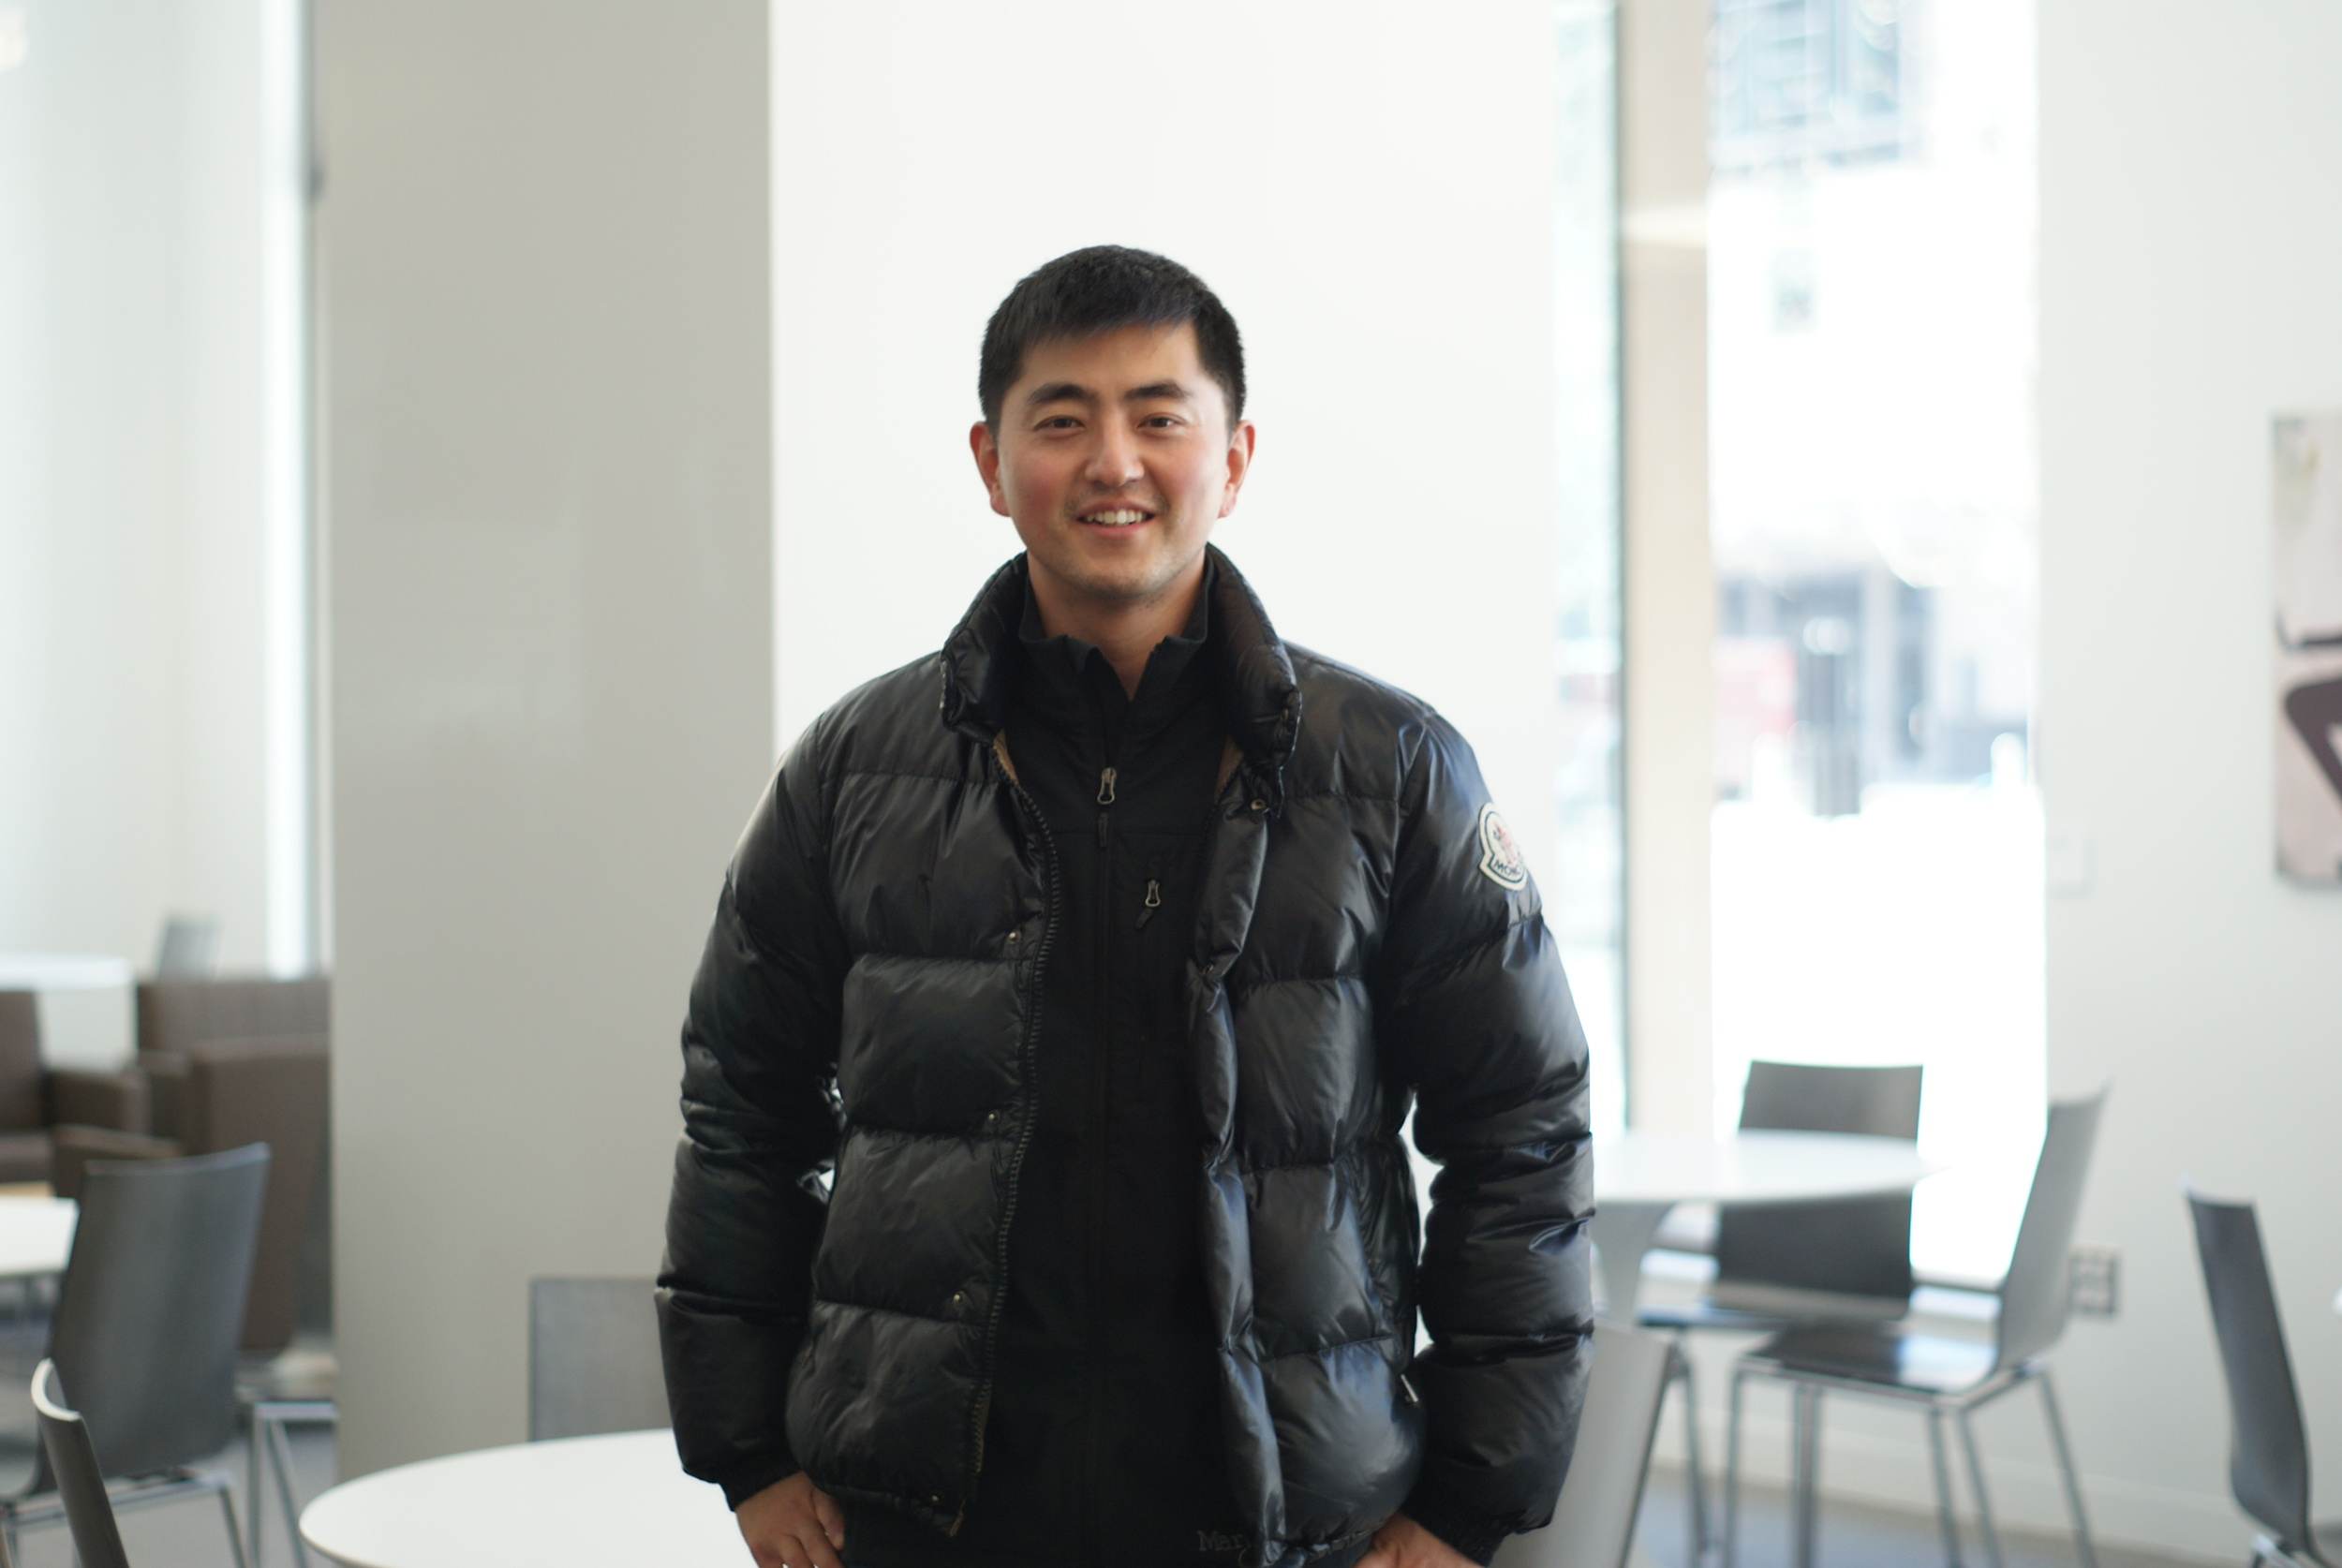 """Junmo Kim '16       """"I want to say sorry and thanks to my wife. Before b-school, even when I was working full-time, I never had this conflict of role as a career driven individual, a husband and a father of three boys. I was called a """"superdad"""" for always balancing out my work and family. But last month, an hour before my meeting with a recruiter in NYC, my wife called me and told me she was sick. Knowing that she rarely expresses her sickness, I immediately wanted to cancel the meeting and get back to Chicago but she convinced me to stay for the meeting. So I flew out next morning on the earliest flight and took her to hospital. She got well soon but never had a chance to say how sorry and thankful I am for having her as my wife."""""""